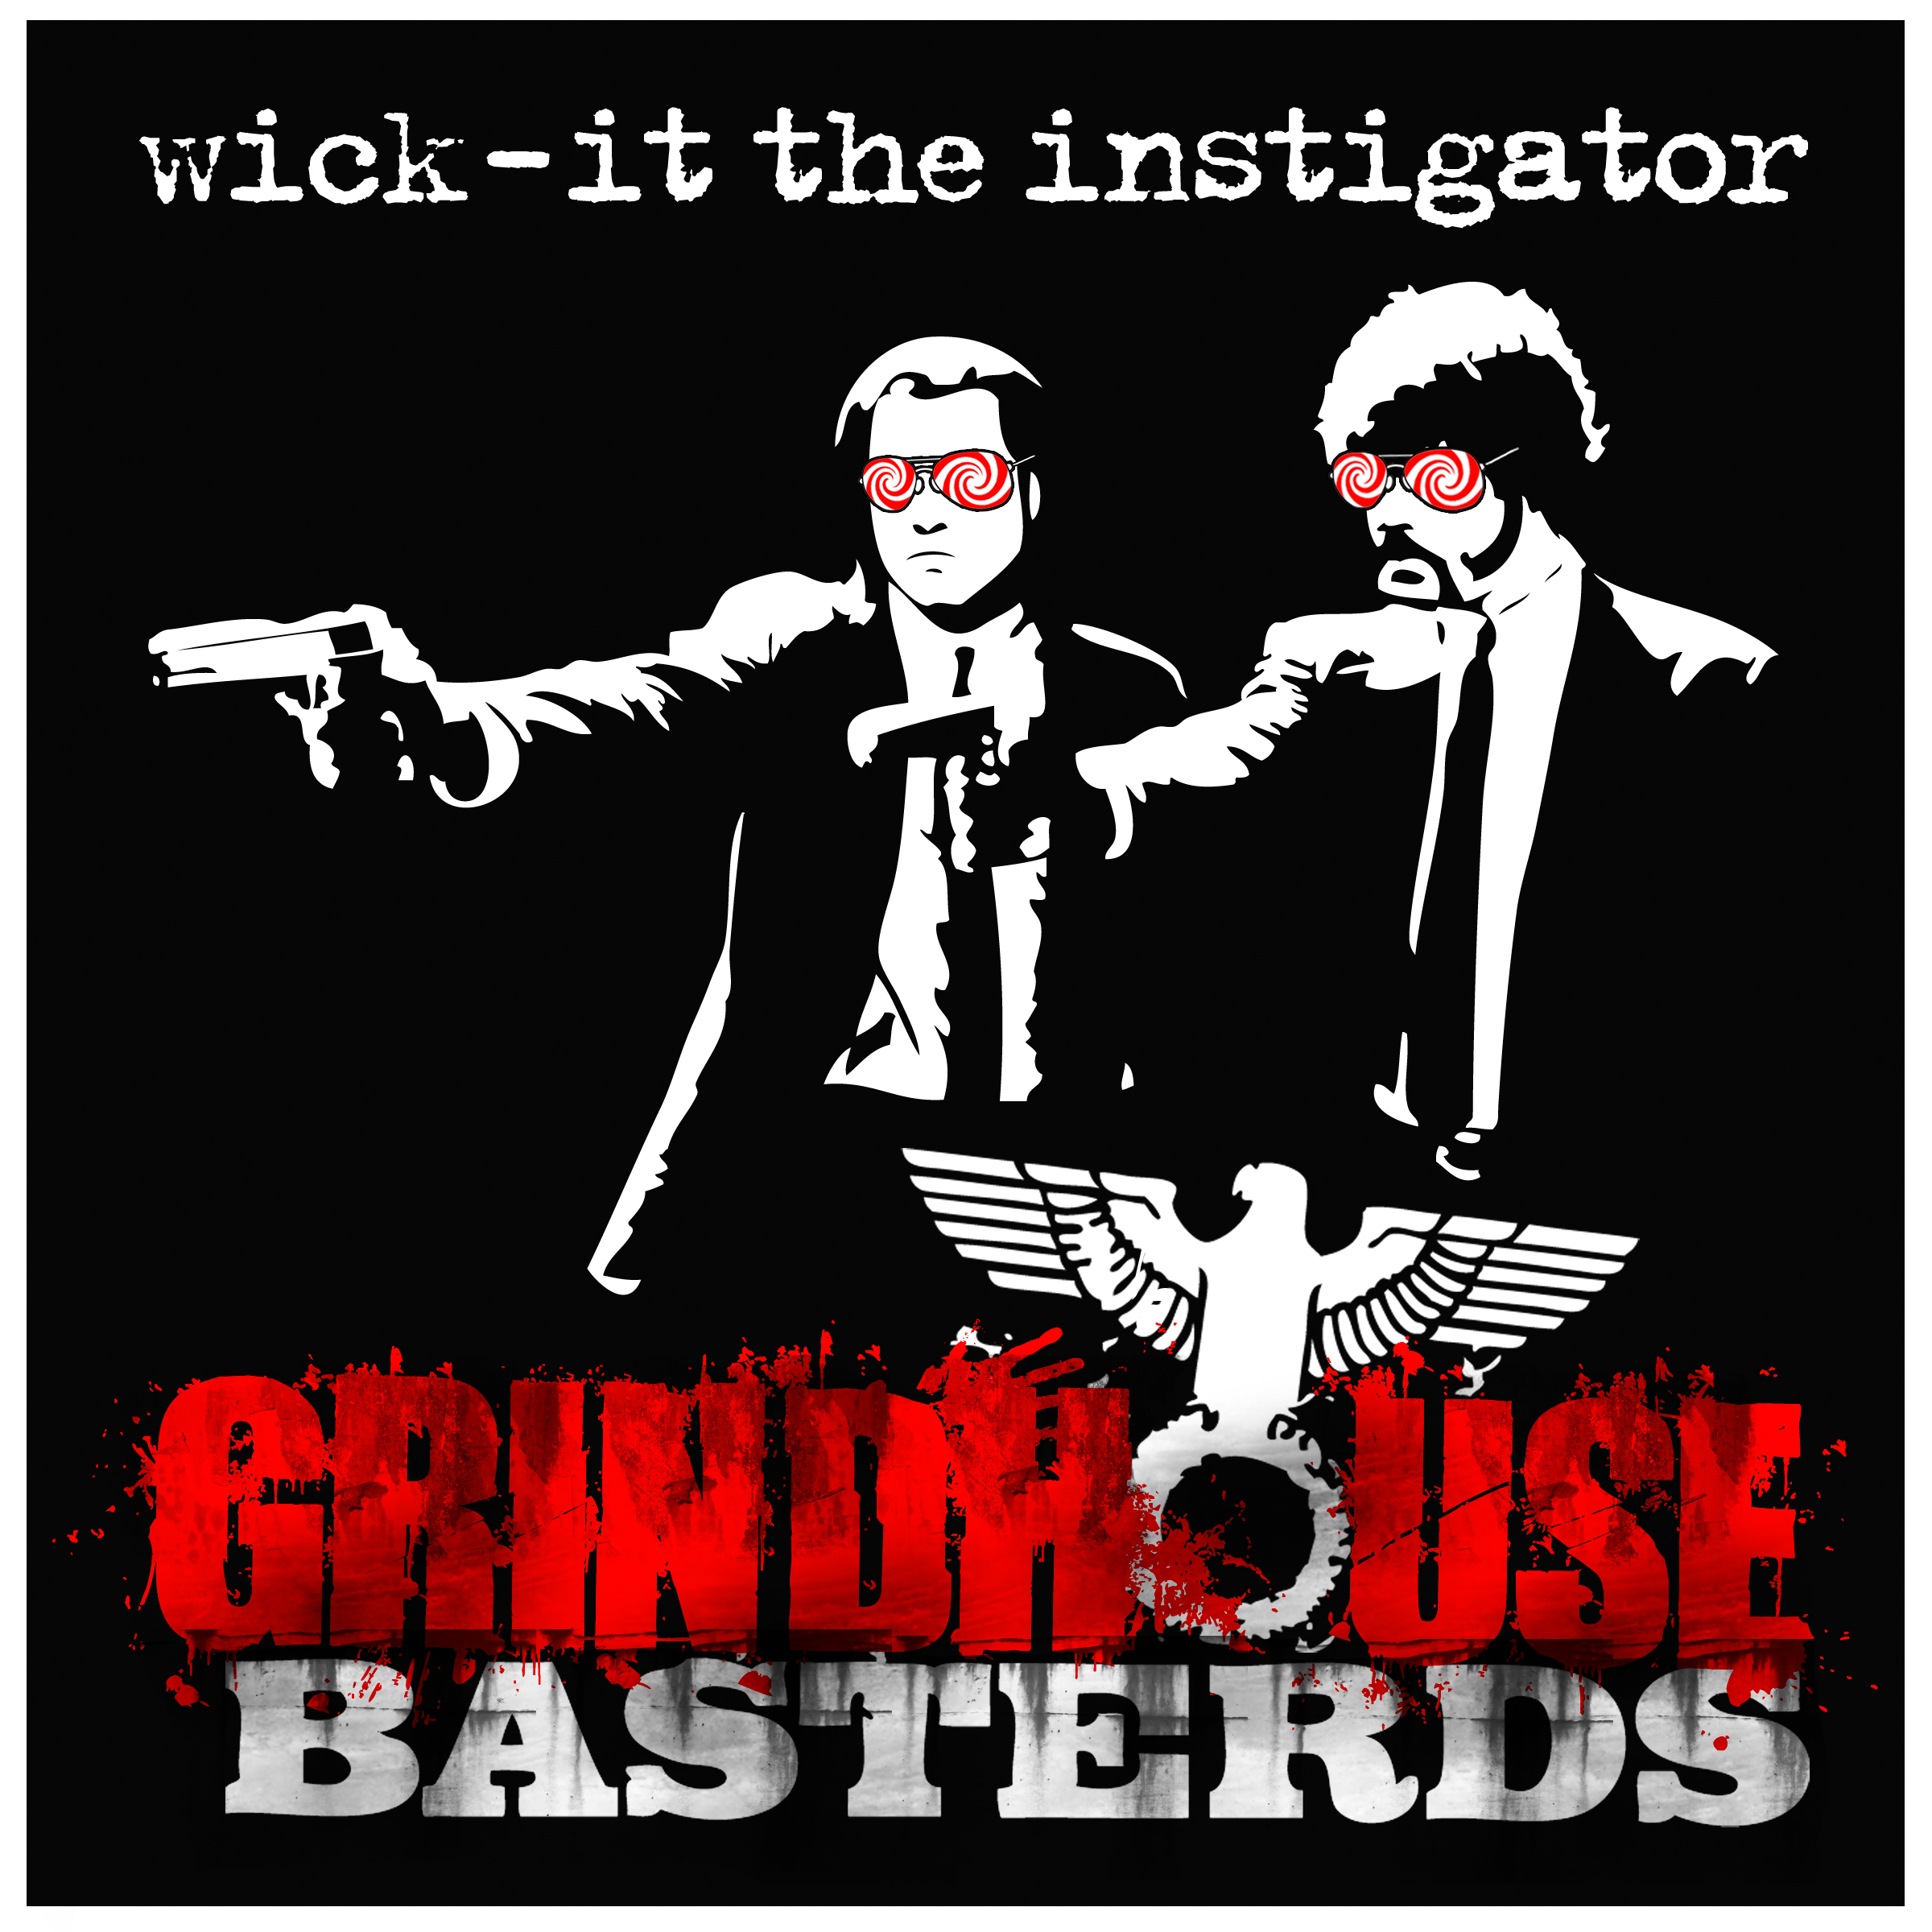 Reservoir Dawgz – feat. Bun B and Yelawolf – By Wick-it the Instigator